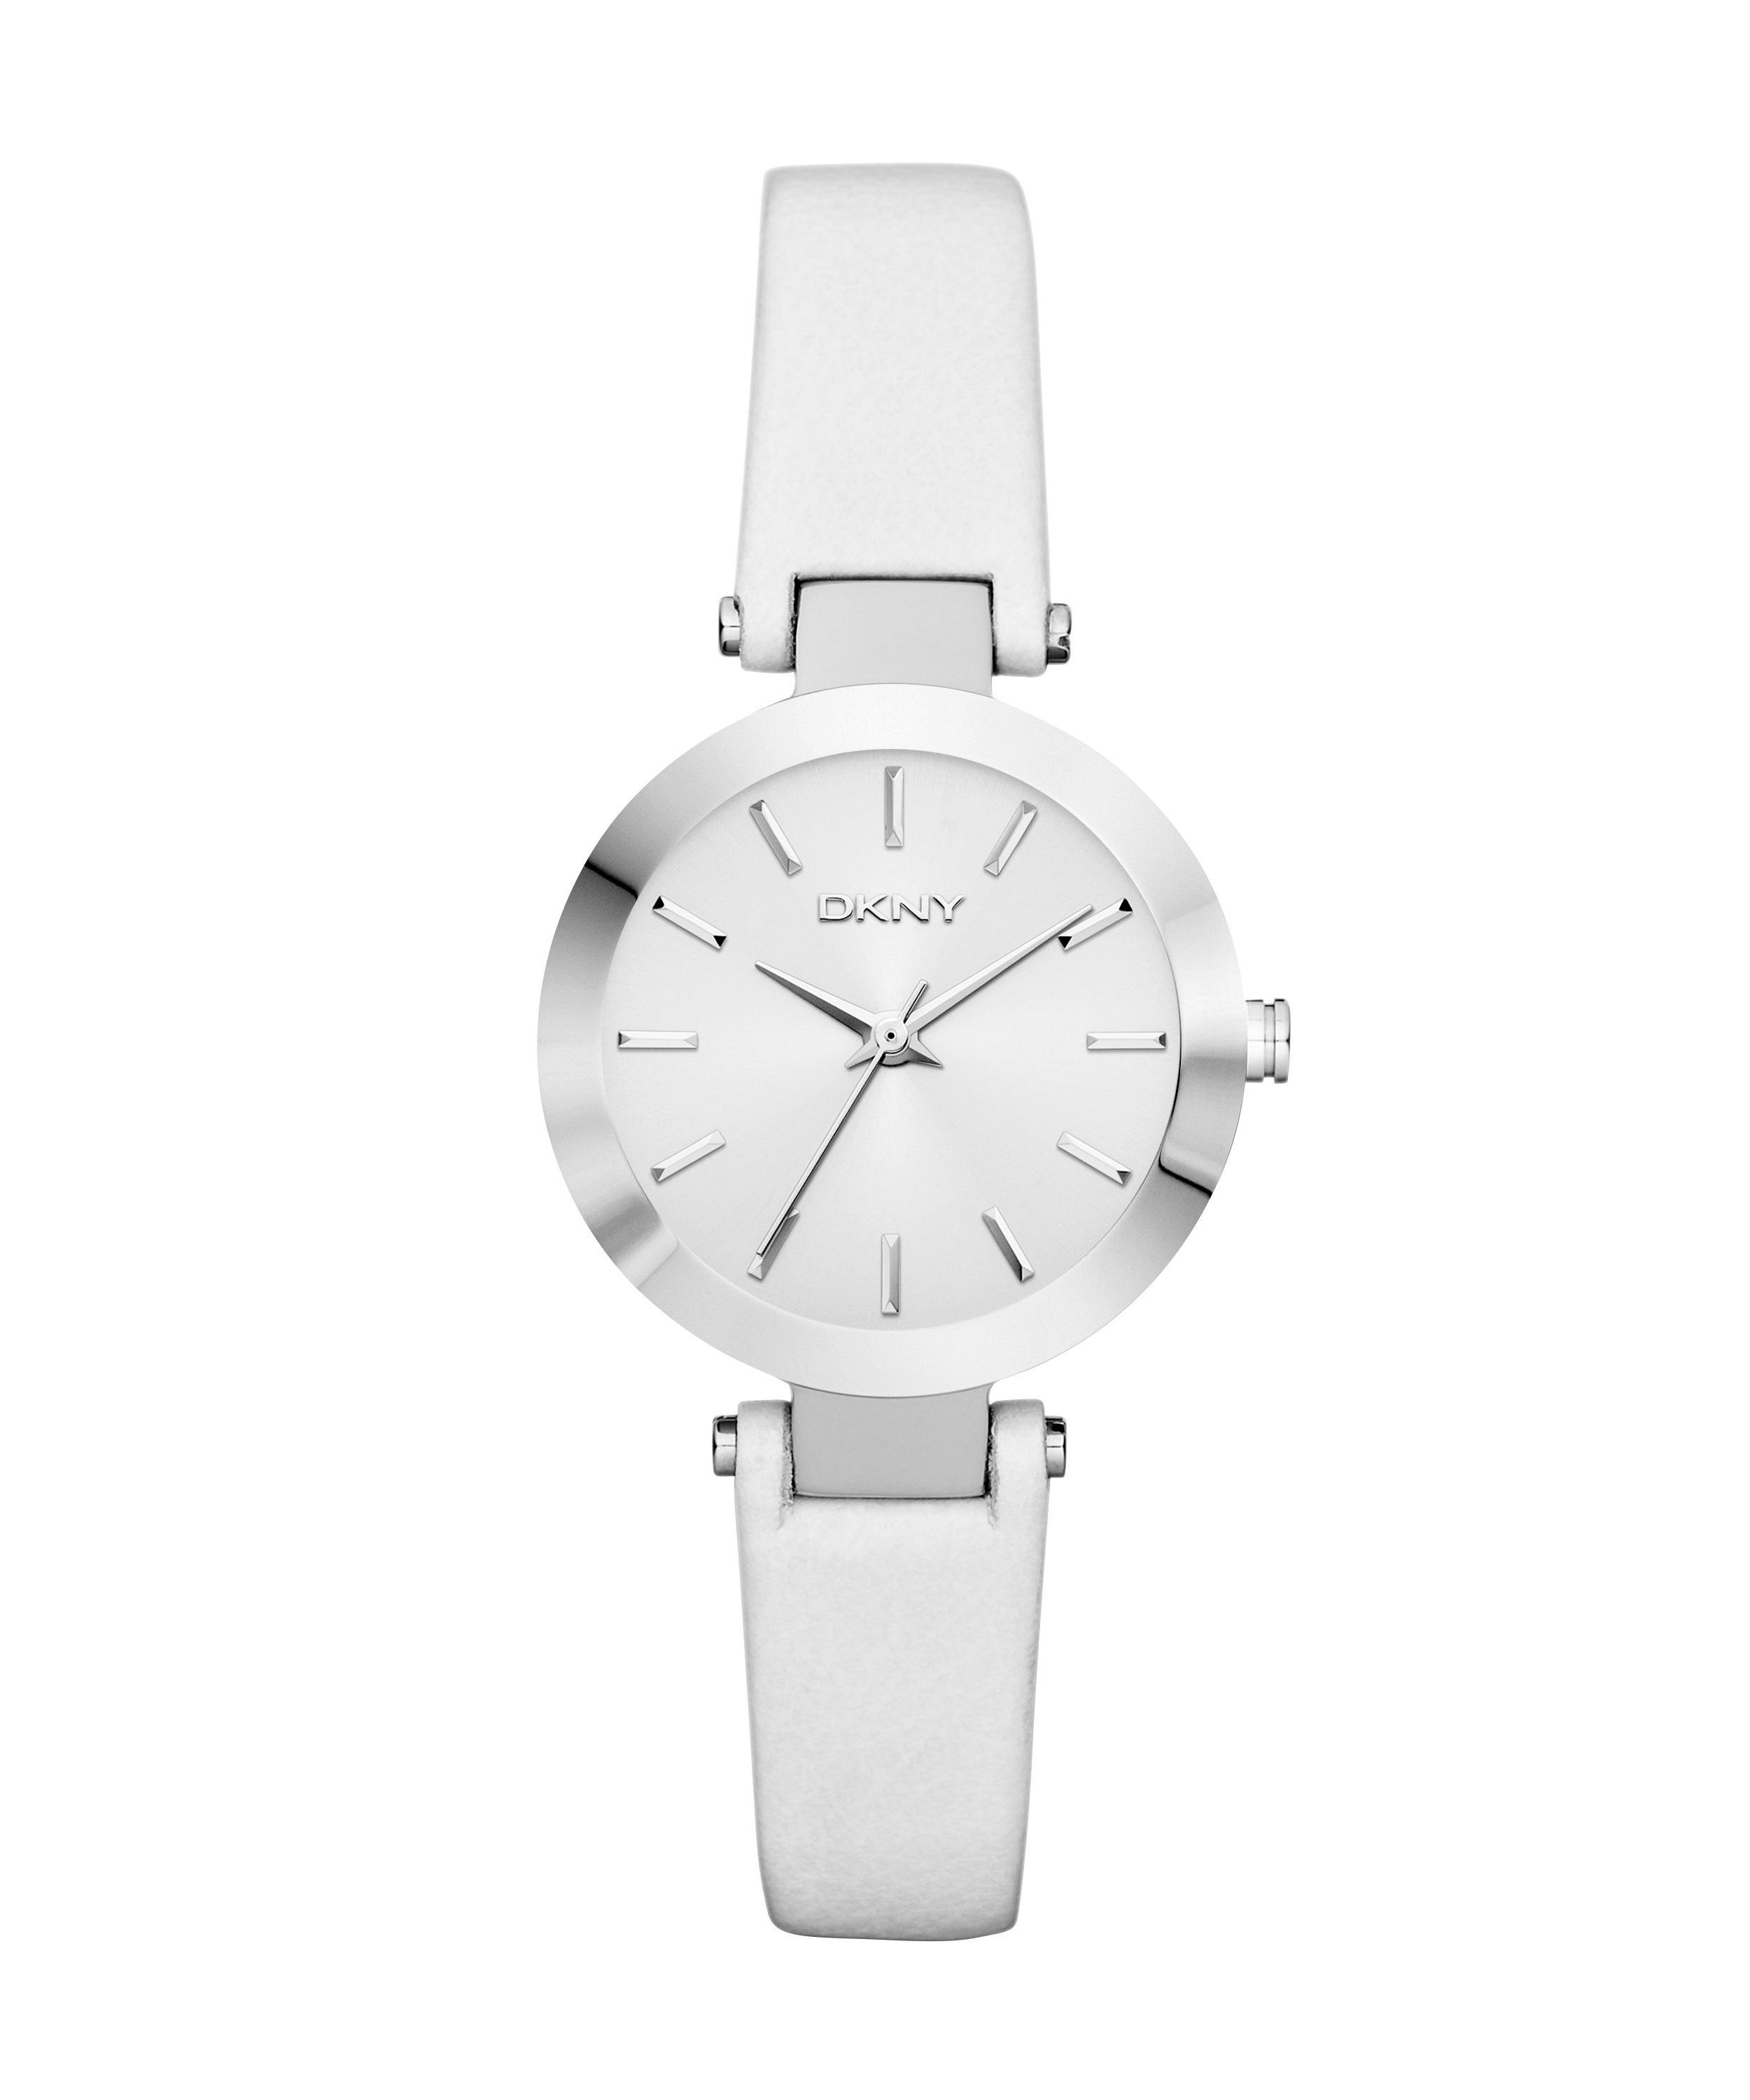 NY8782 Essentials white leather ladies watch